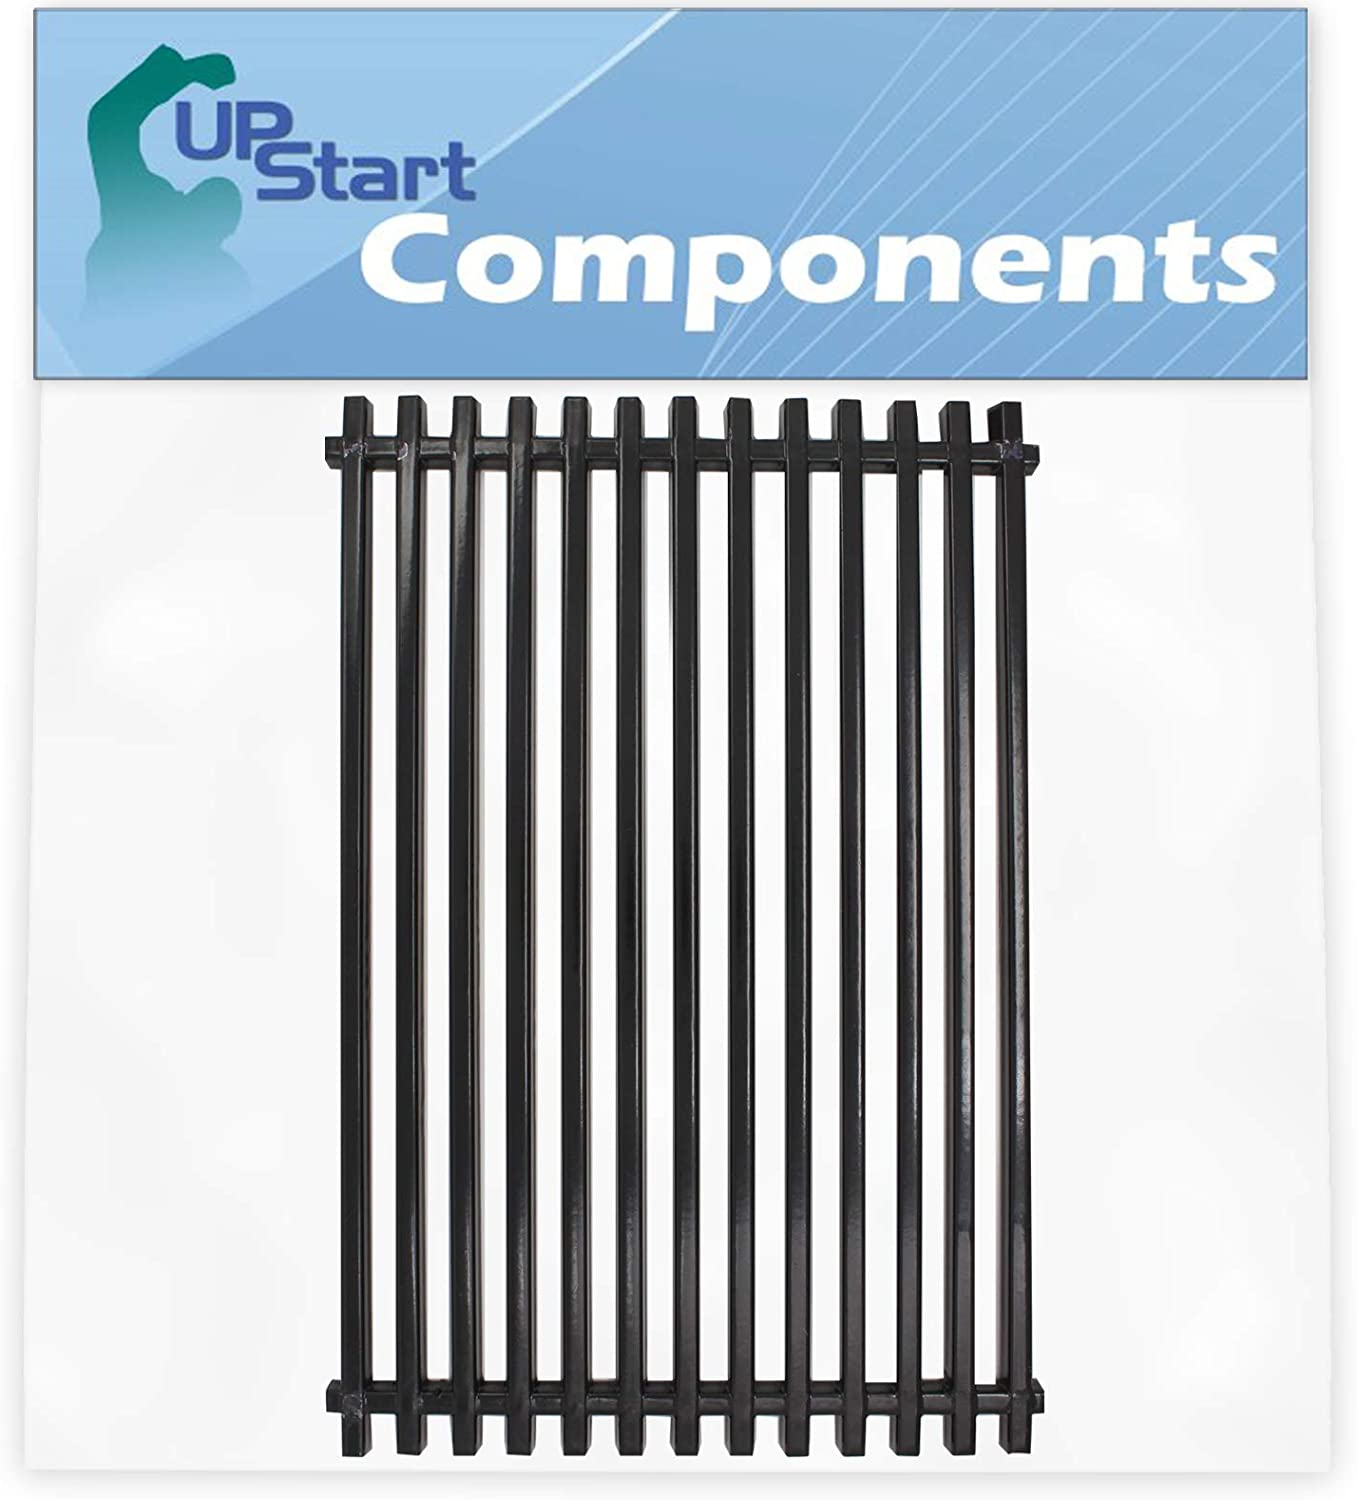 UpStart Components BBQ Grill Cooking Parts fo Replacement Grates Las Vegas Max 52% OFF Mall